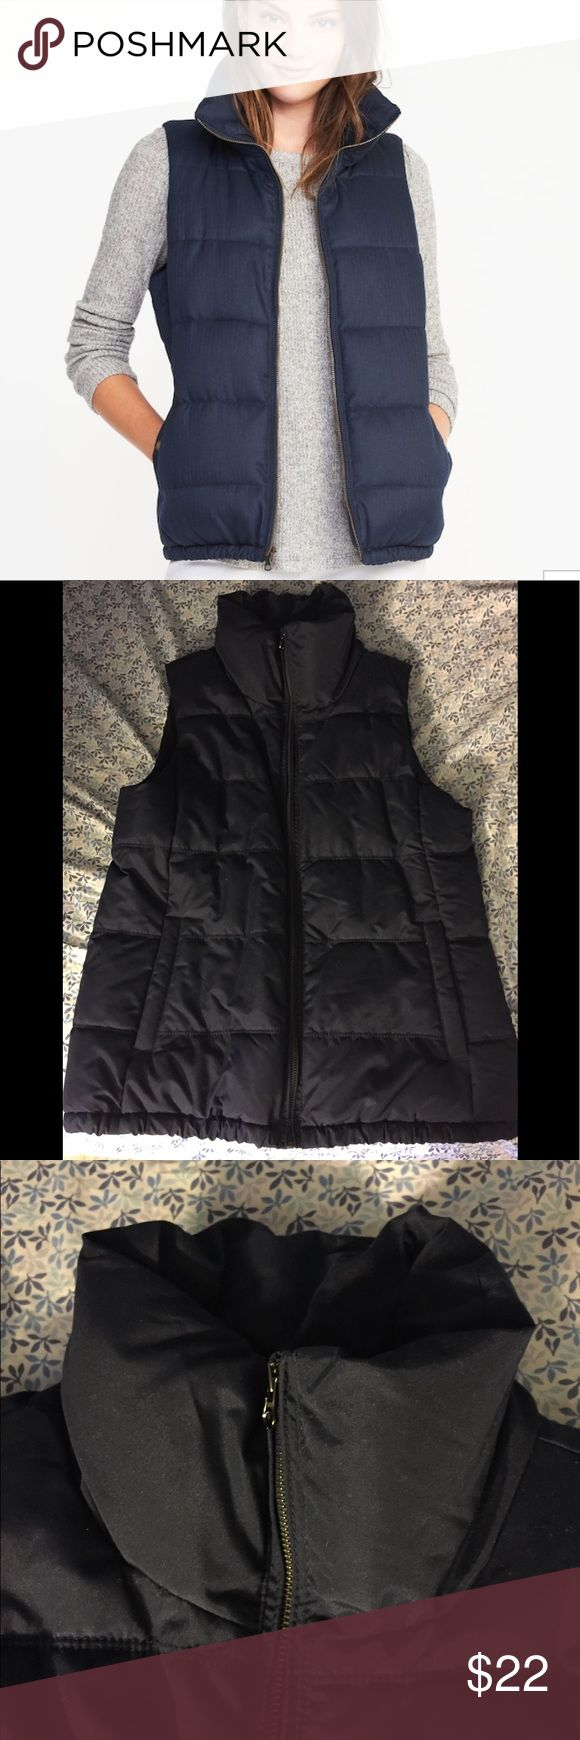 Old Navy Puffer Vest NWOT. Classic puffer best from ON. Great condition. Perfect for fall! Old Navy Jackets & Coats Vests